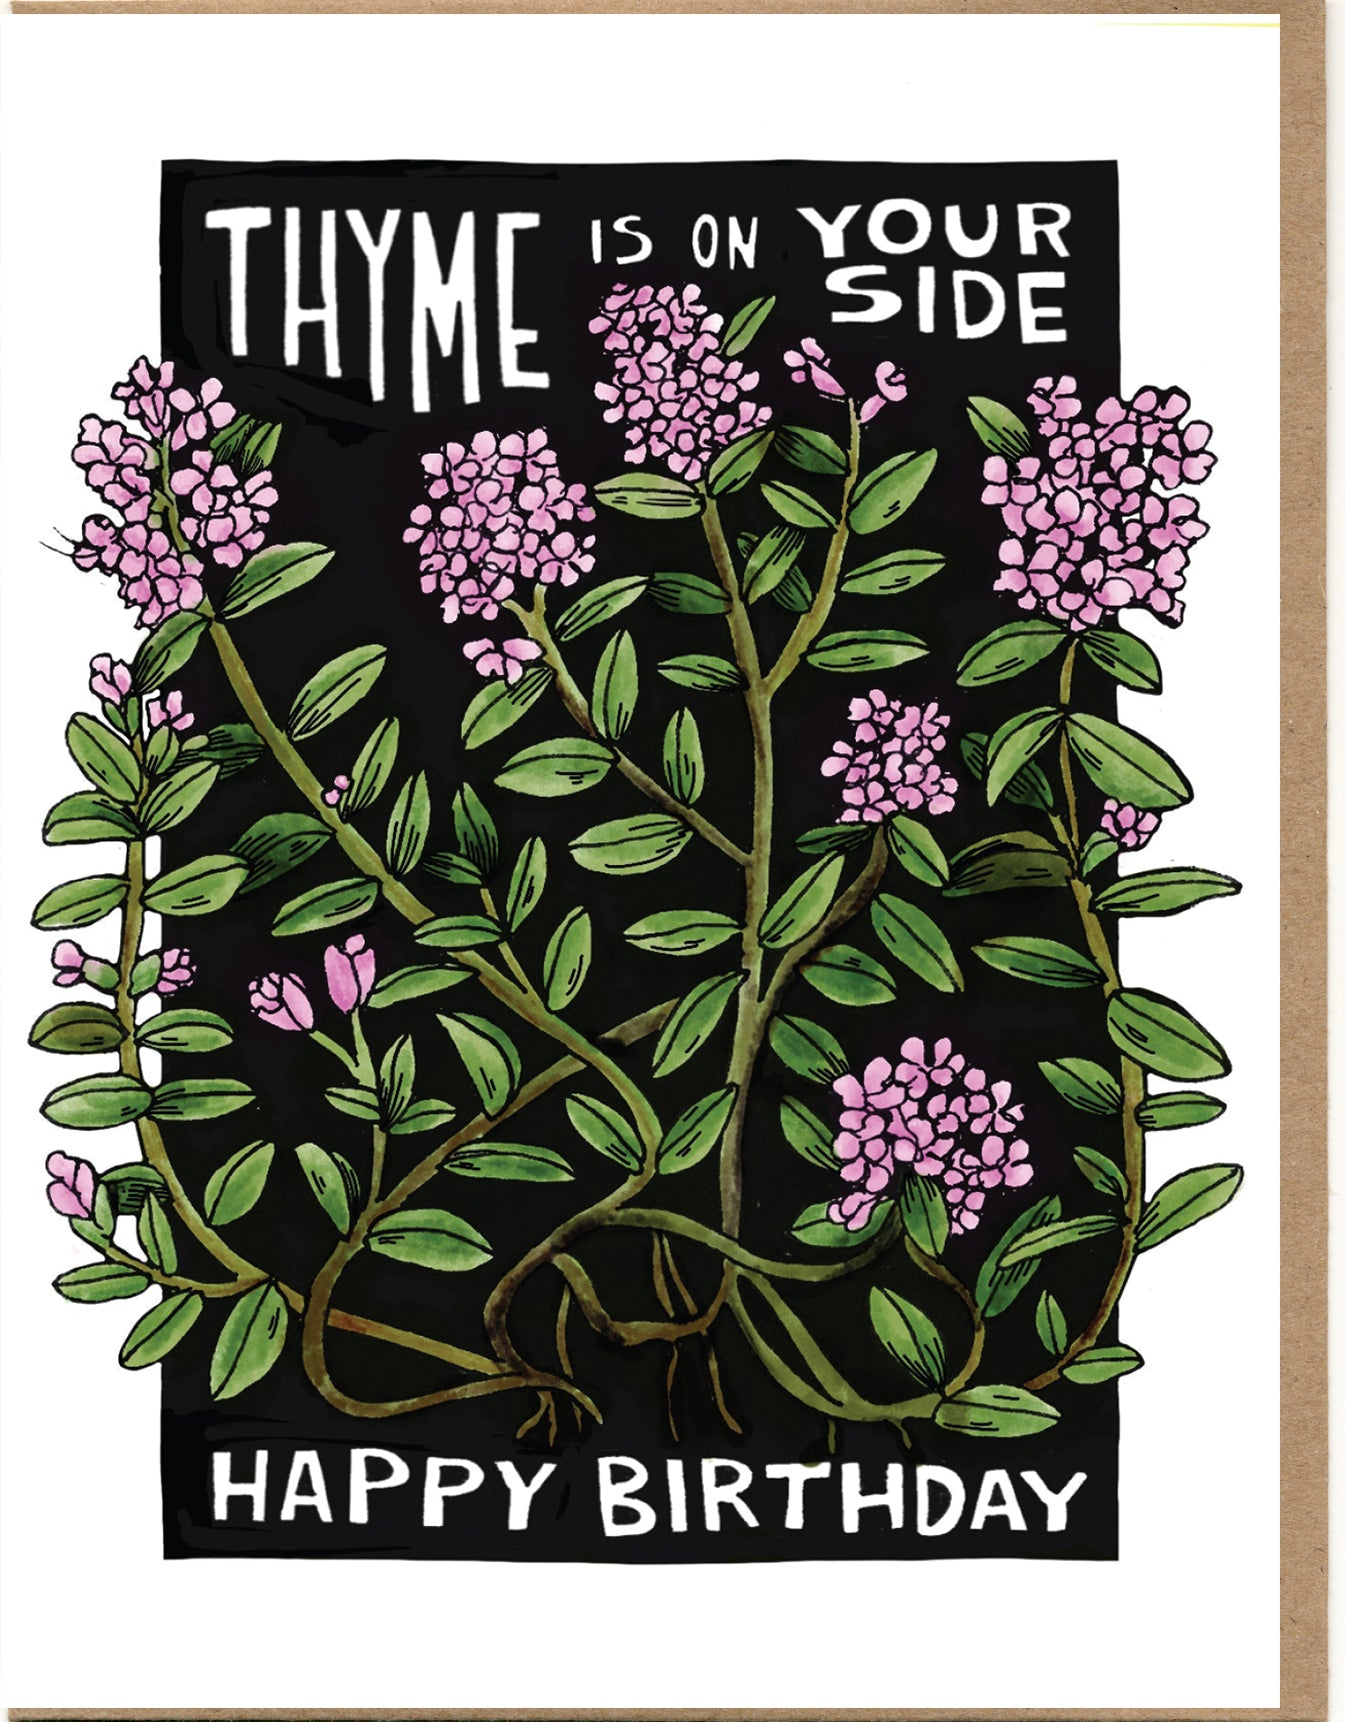 thyme on your side